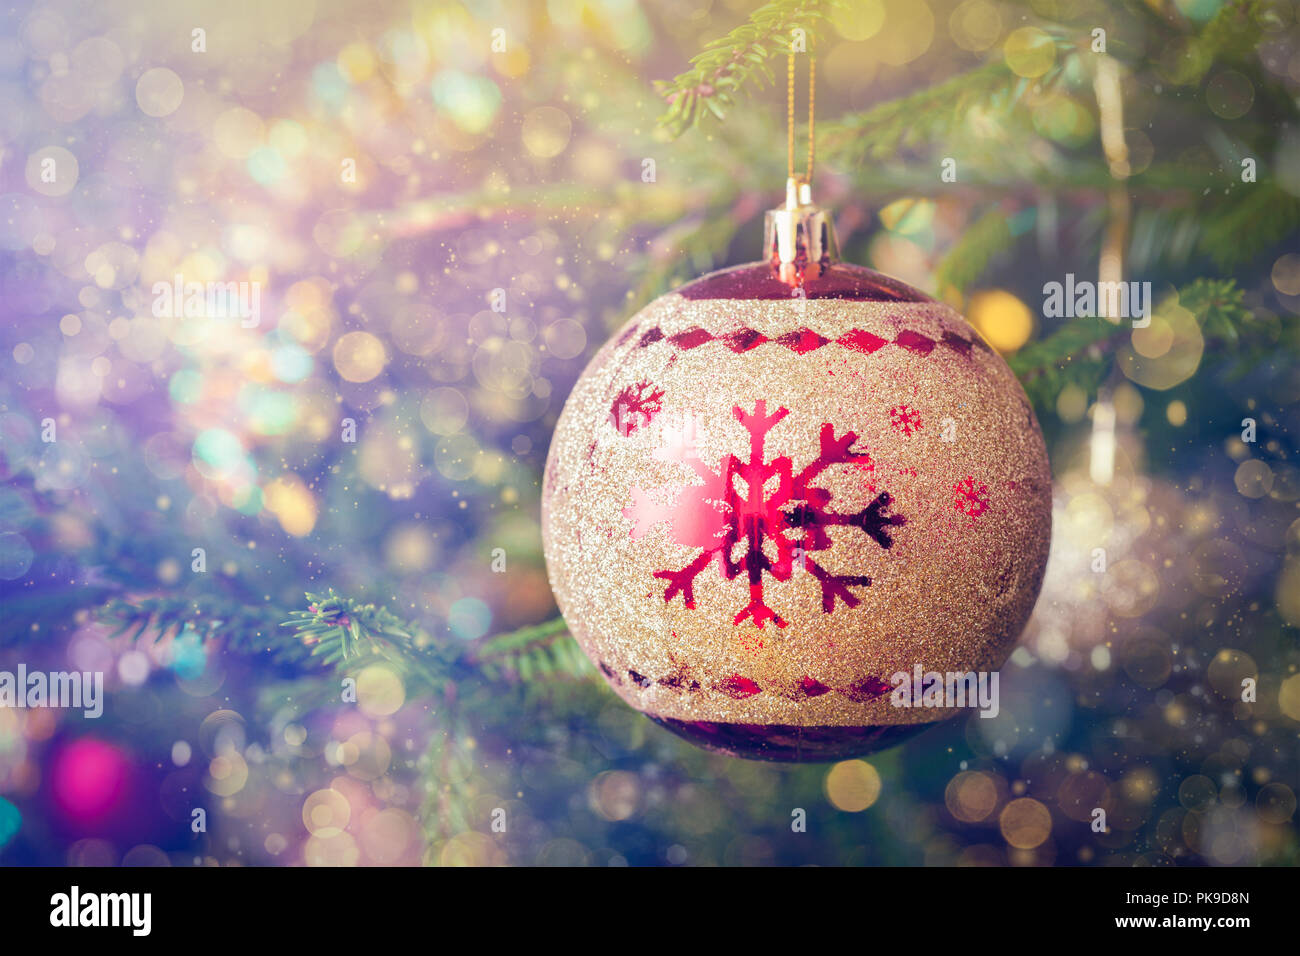 Christmas-tree decoration bauble on decorated Christmas tree bac - Stock Image